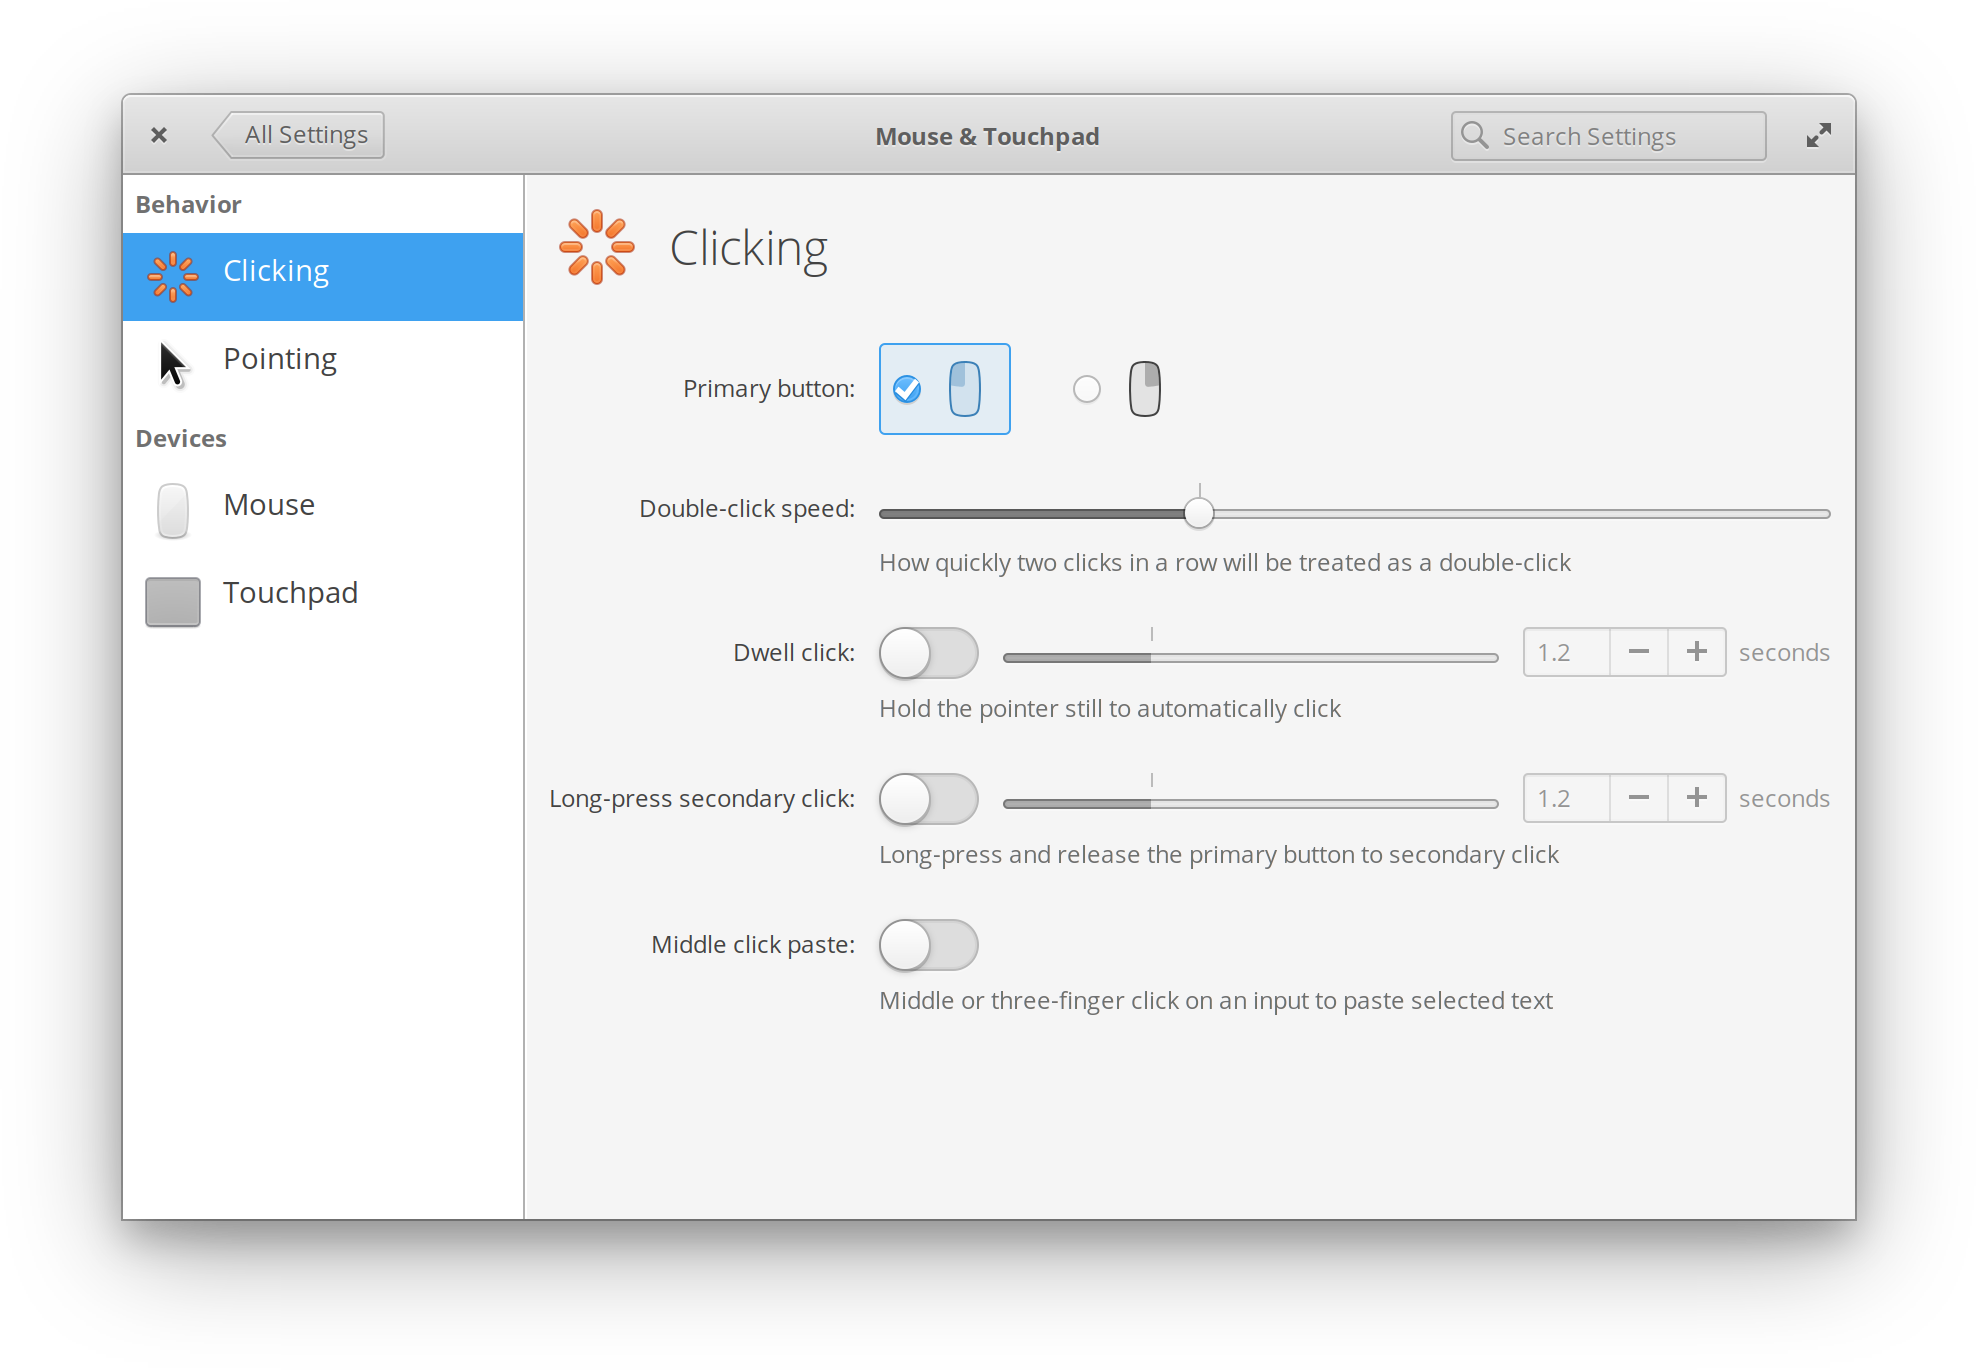 Updated Mouse & Touchpad settings